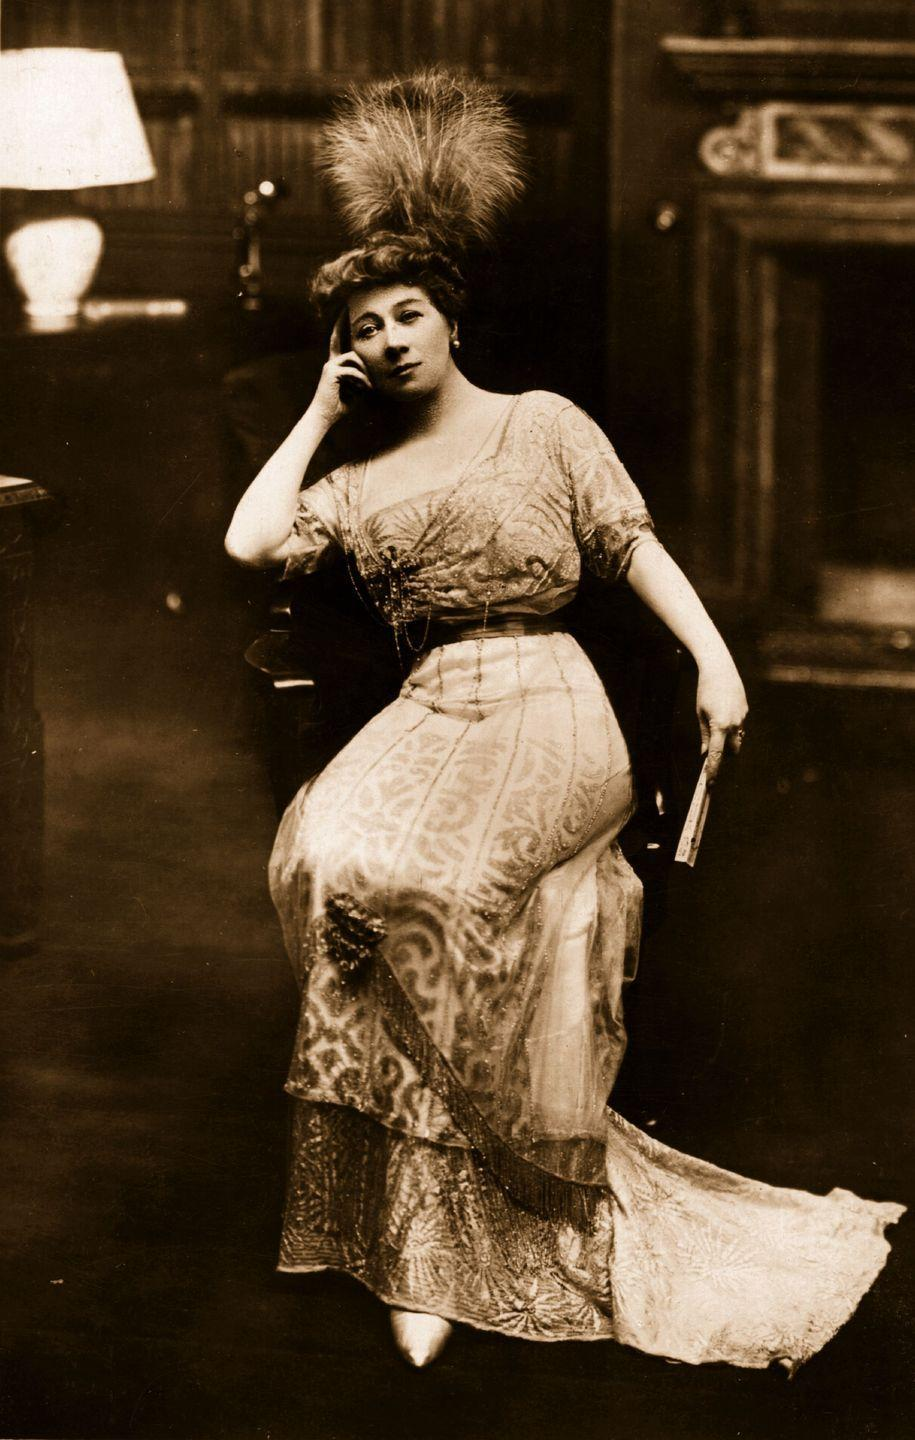 <p>Again, this period welcomed lighter fabrics like chiffon, and a woman's silhouette was more streamlined than ever before. Elaborate details like beading and velvet sashes were also in vogue.</p>